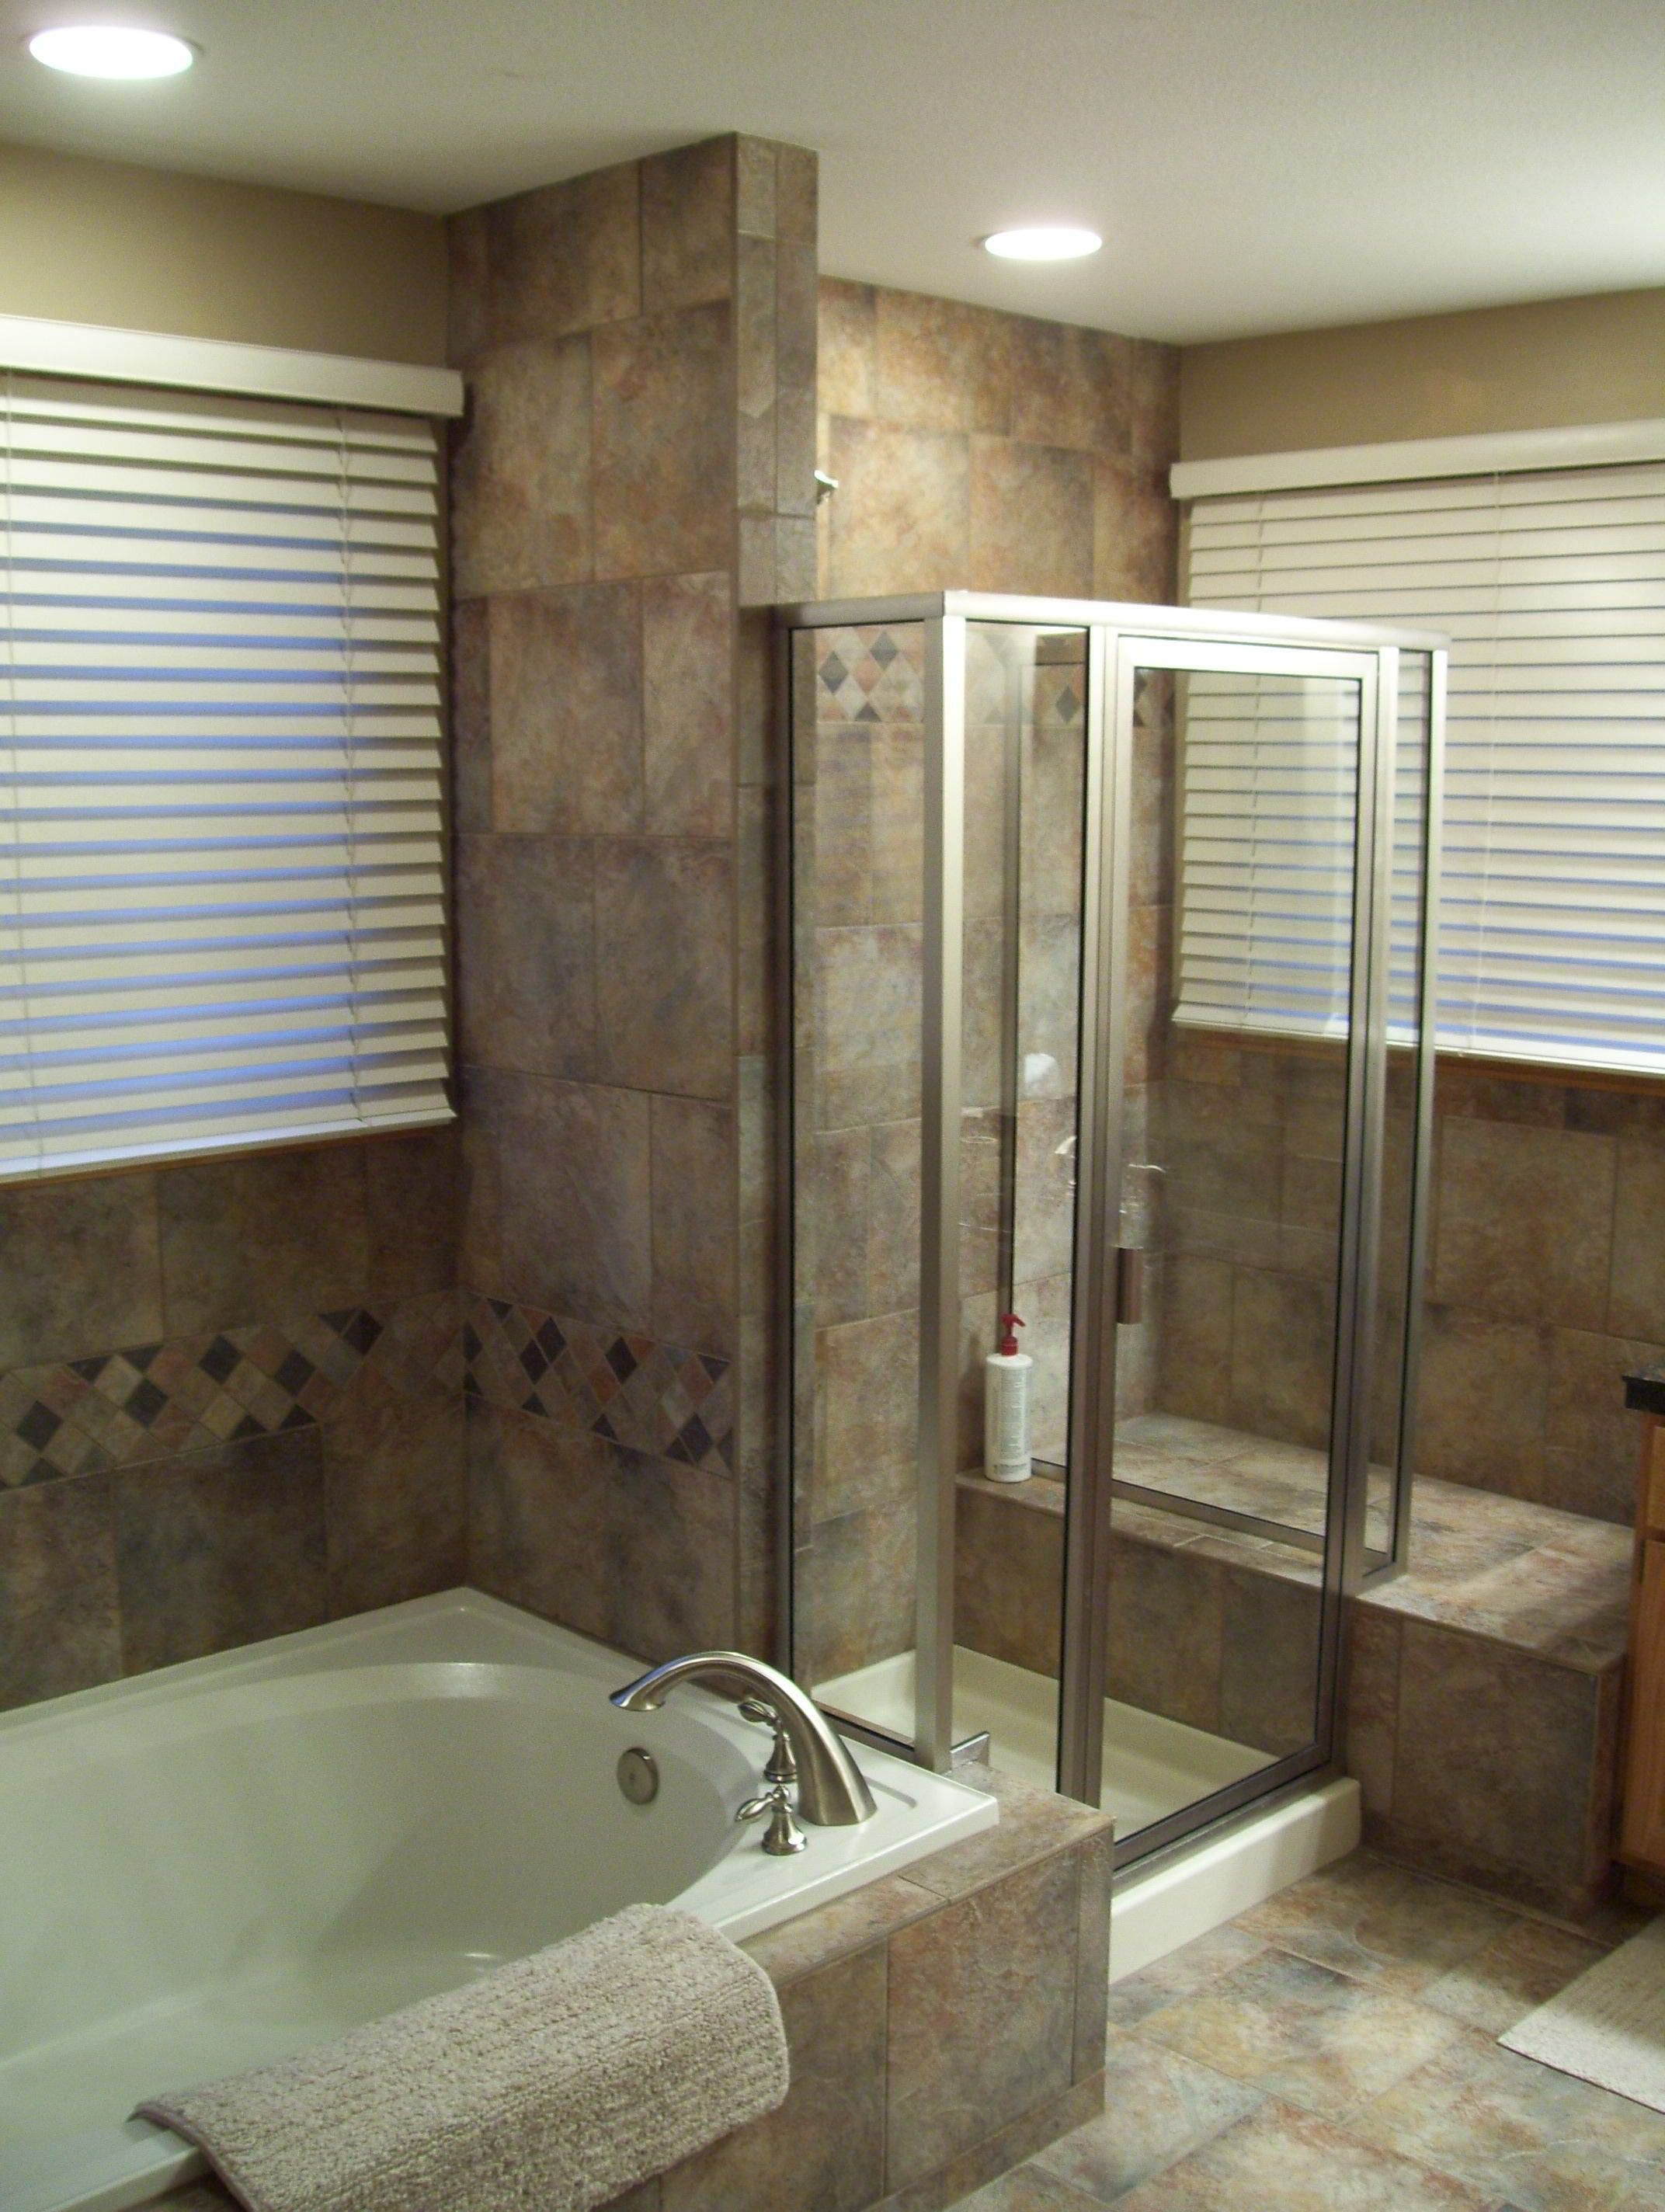 Bathroom Remodel Software The In This Bathroom Remodel Software Looks Enchanting Without